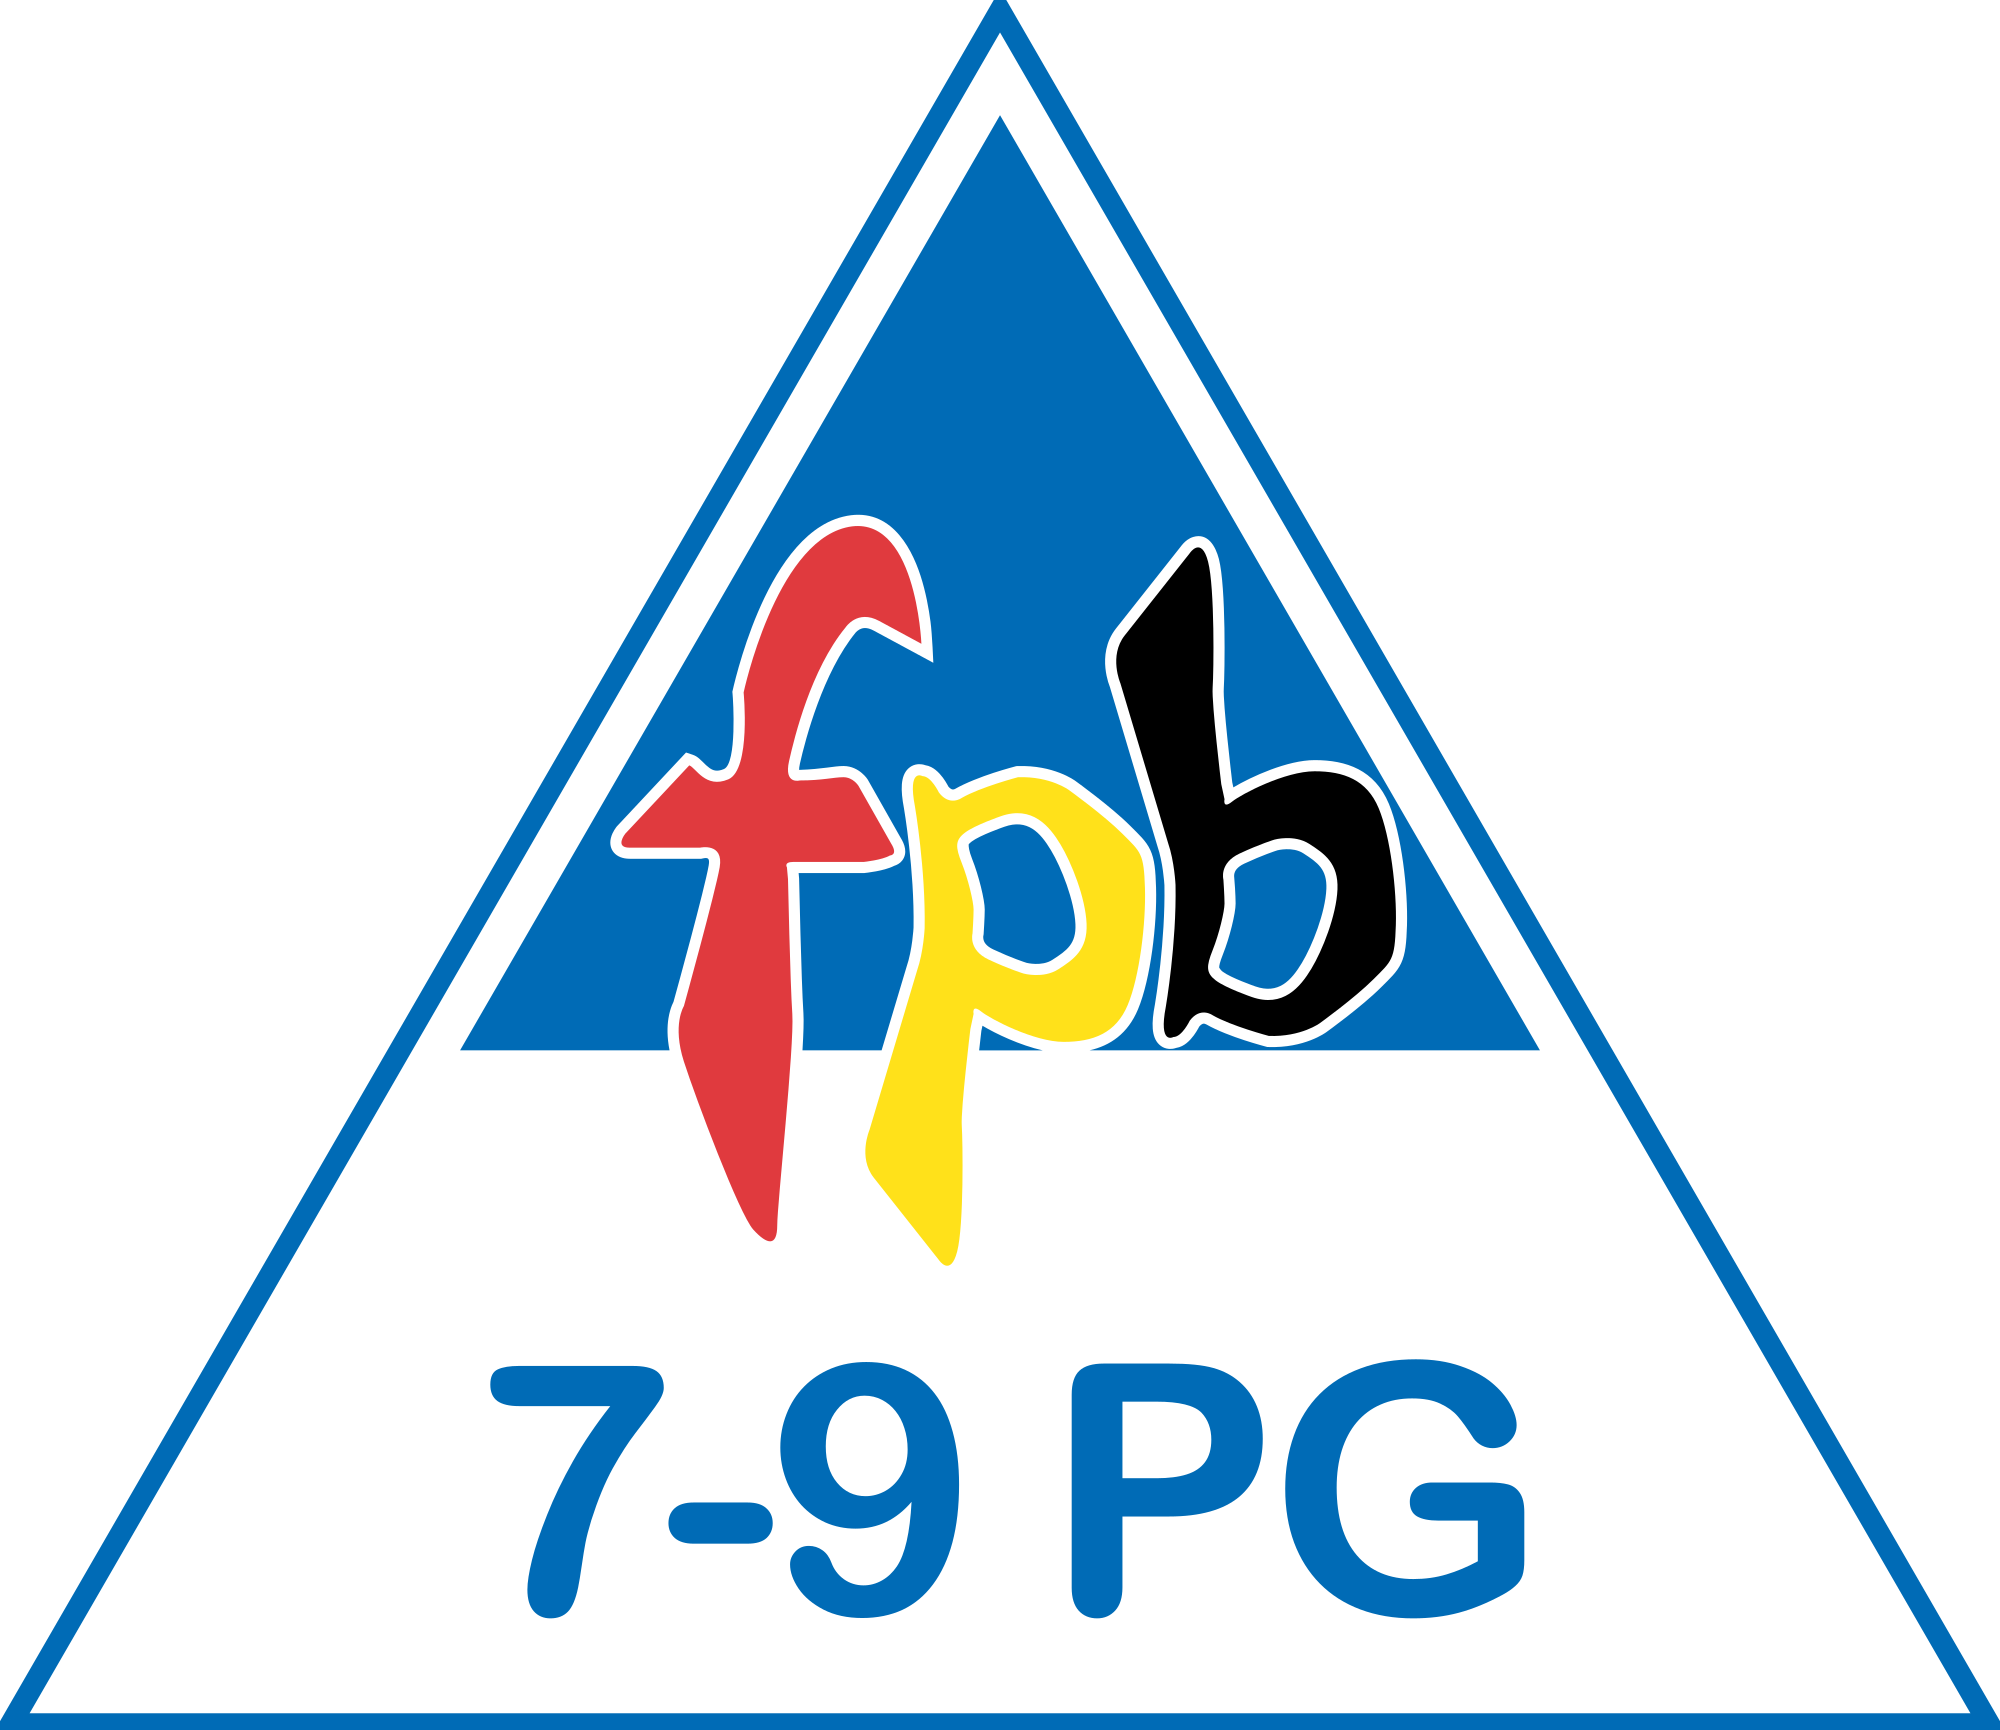 FPB 7-9.png